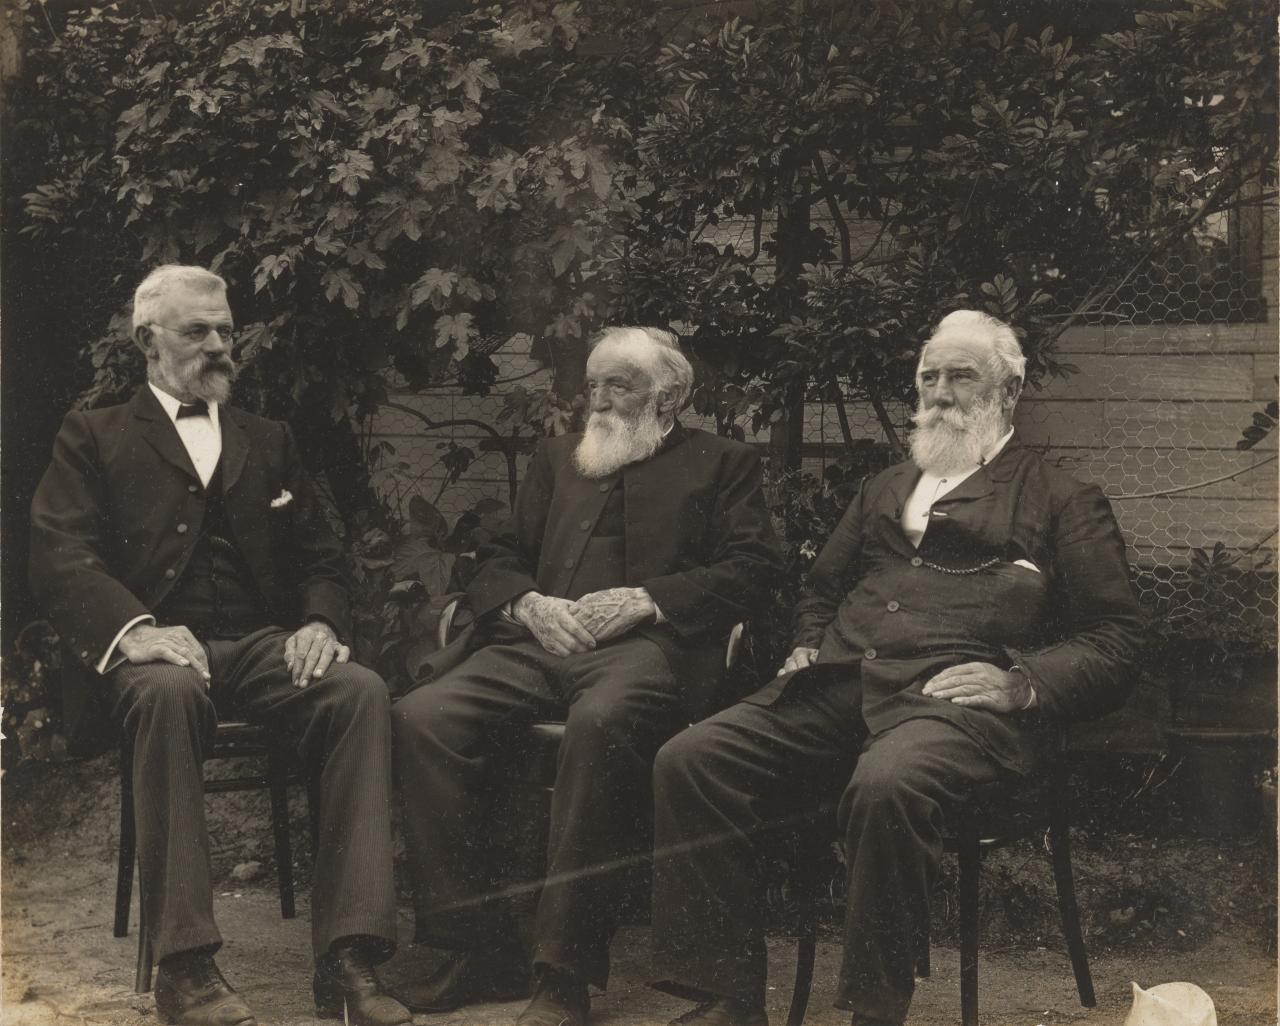 Messrs Eggers, Bulmer, and Golding seated, Paris panel